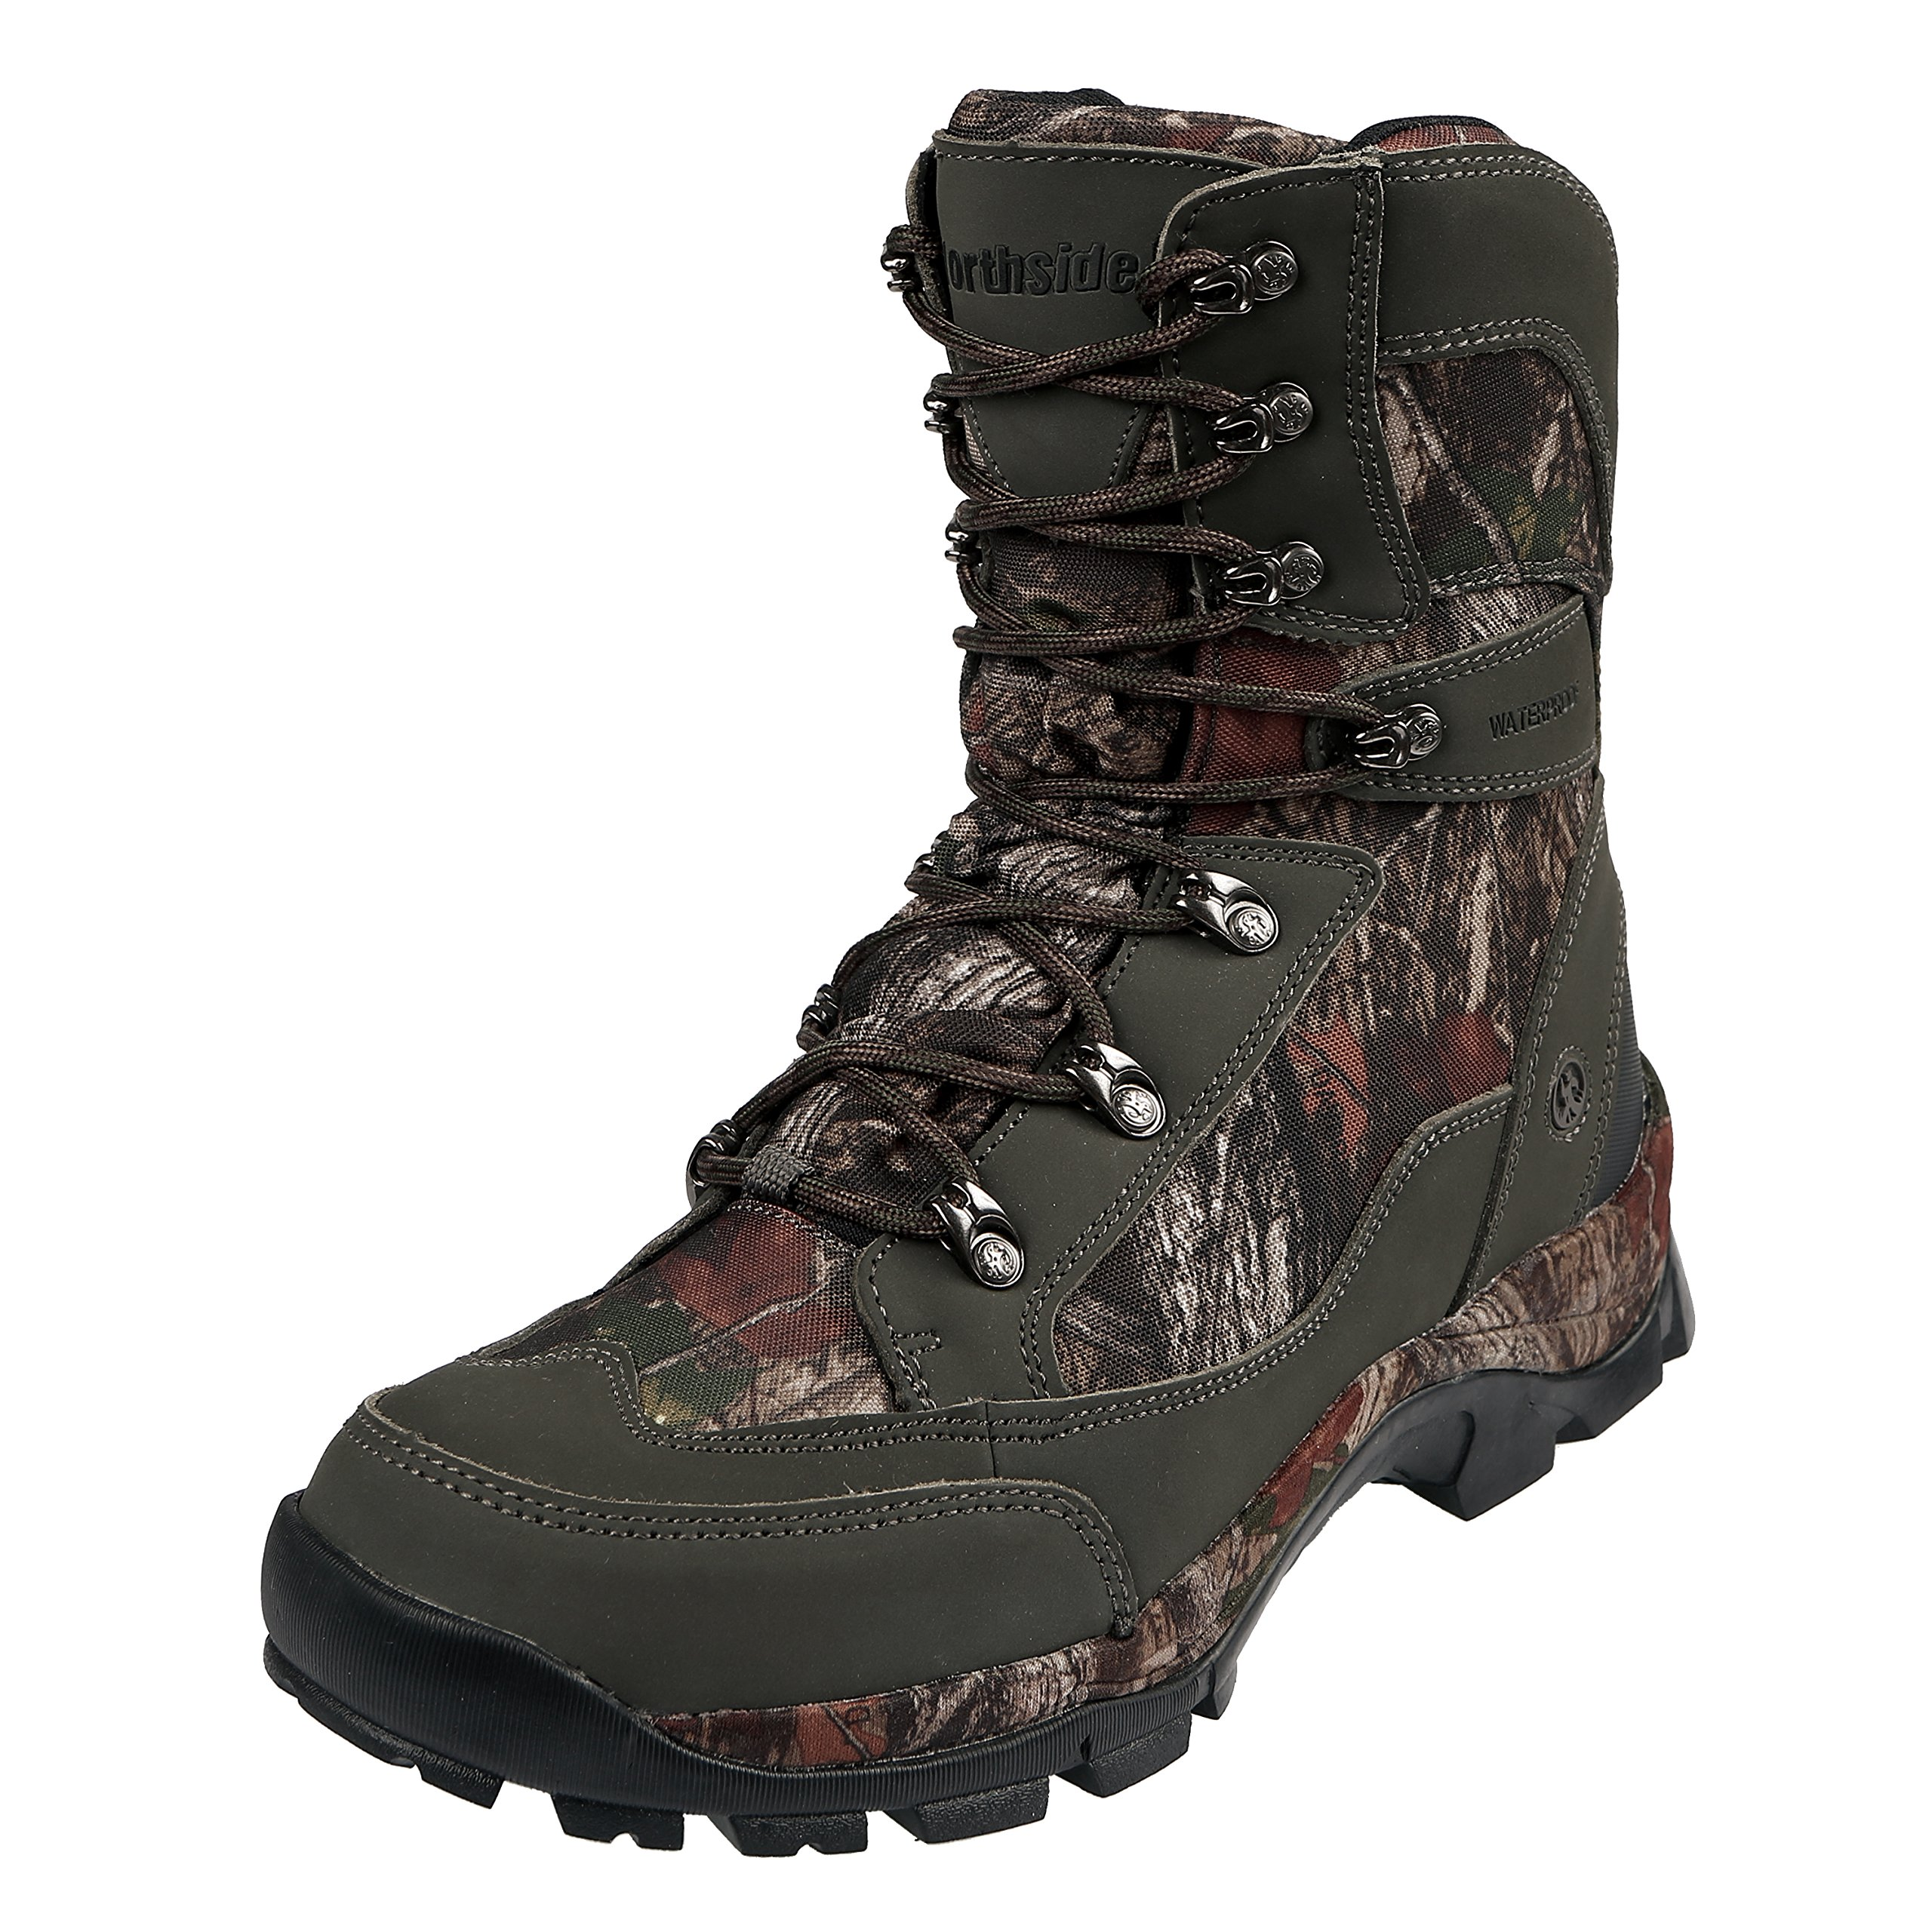 Northside Men's Buckman 800 Backpacking Boot, Dark Olive, 7.5 Medium US